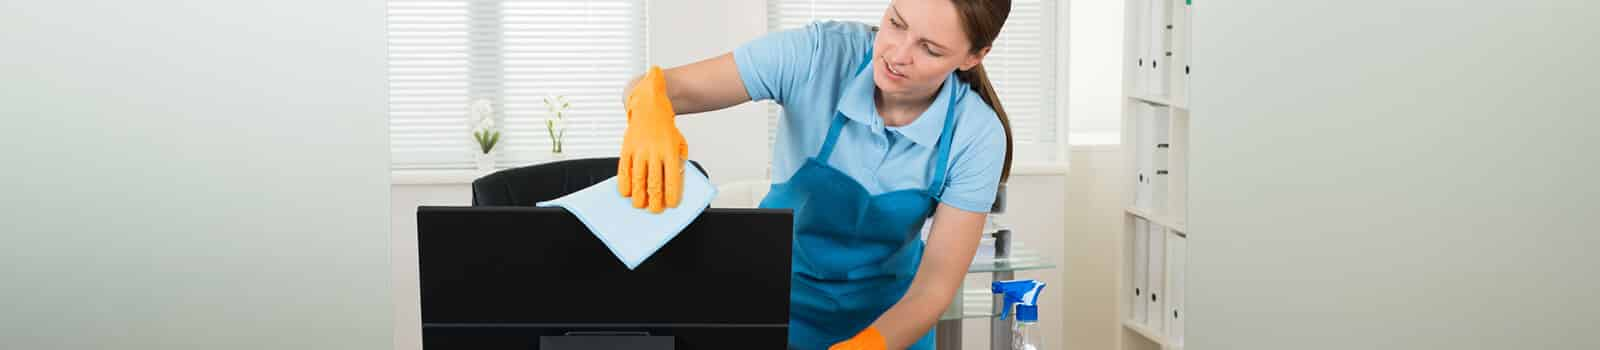 Commercial Cleaning Services Florida